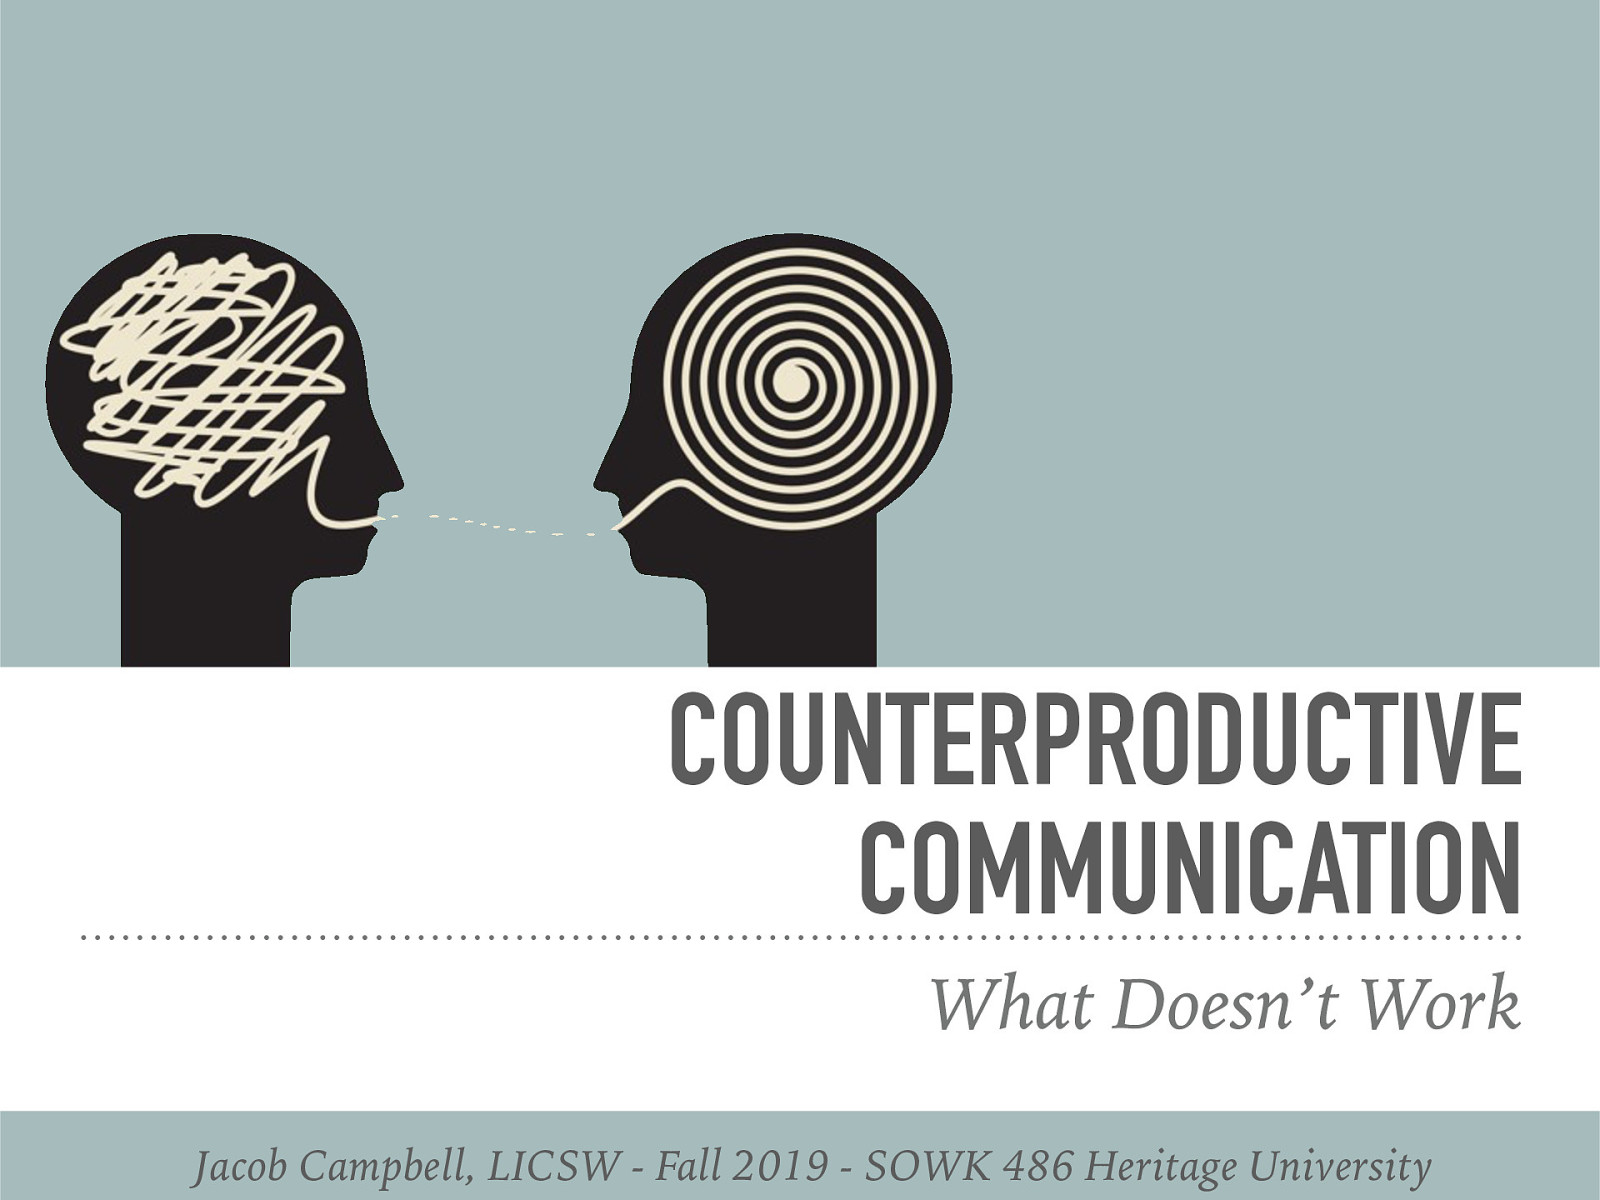 Week 07 - Counterproductive Communication: What Doesn't Work